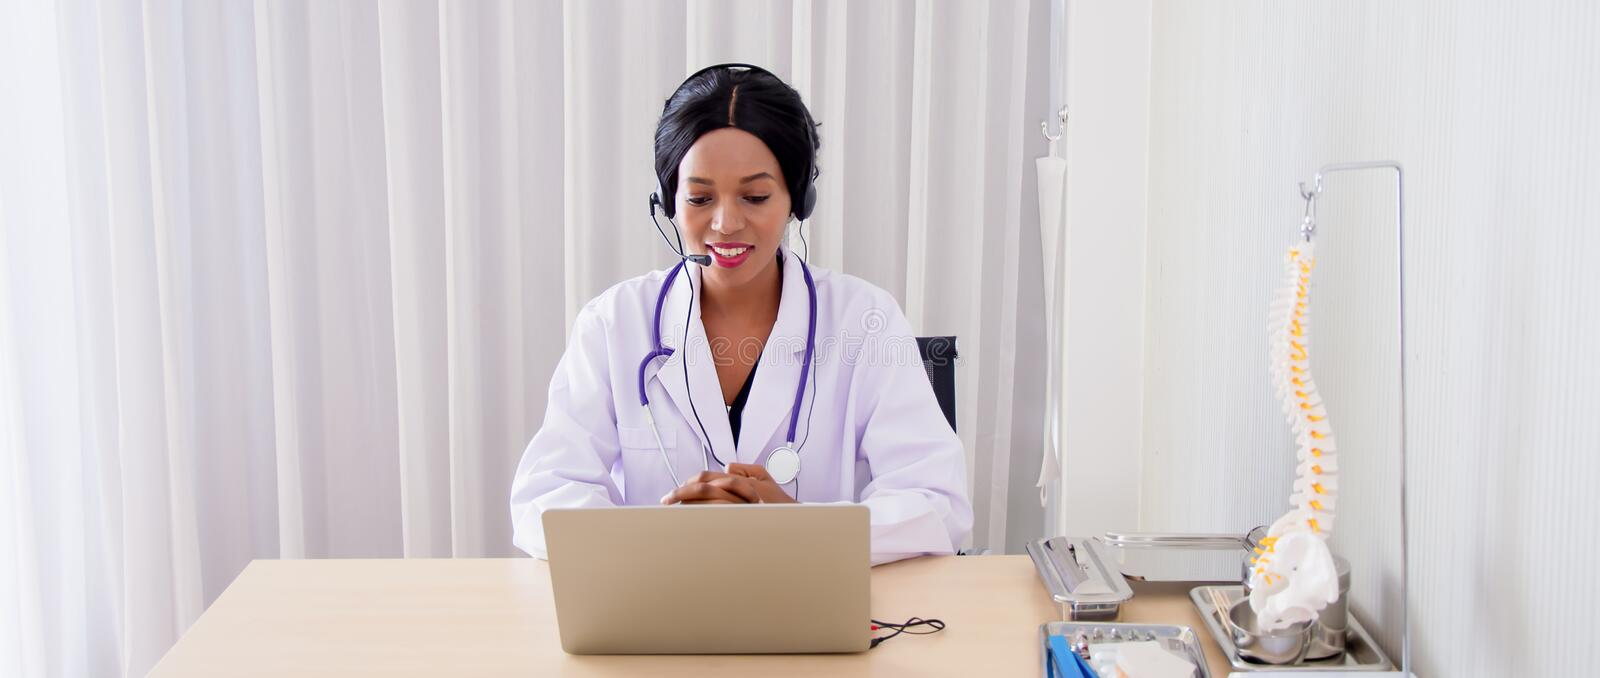 Black female doctor,specialist with sitting desk and headset, consulting health care and disease counseling to patients and public. Online communication from royalty free stock photo